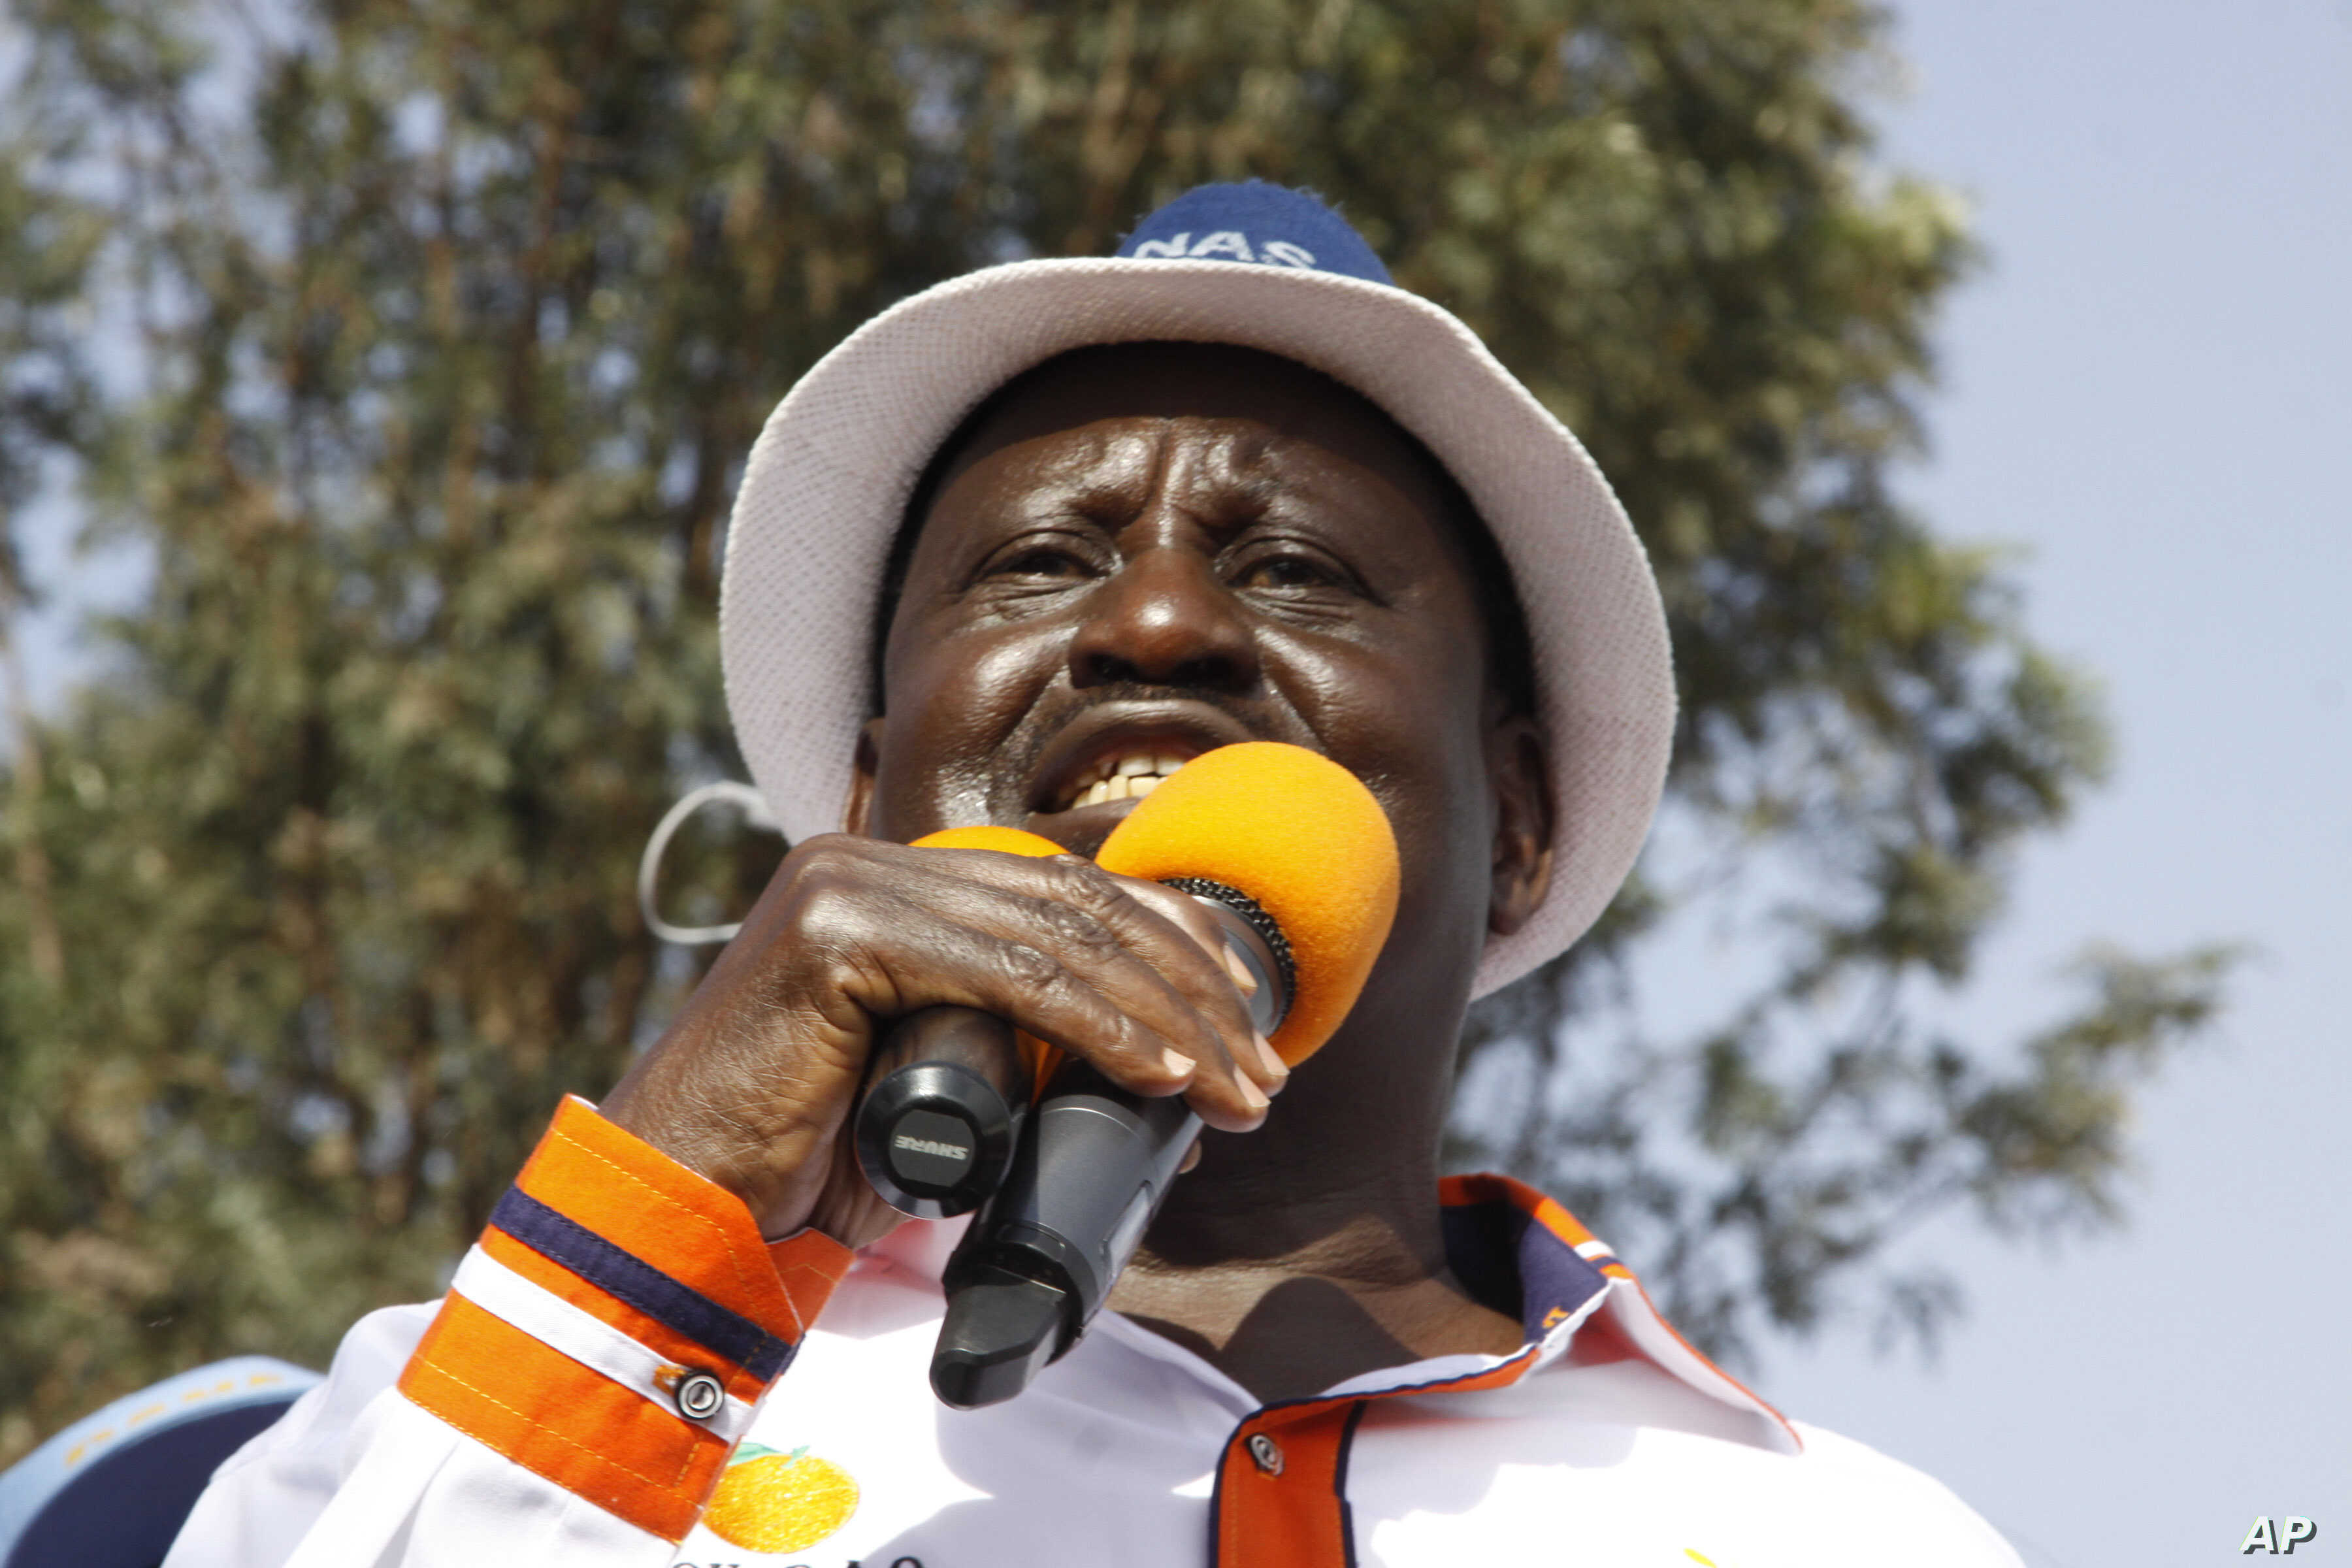 Kenyan opposition leader Raila Odinga addresses a crowd of his supporters in the Kibera area at an election rally in Nairobi, Kenya, Sept. 12, 2017.